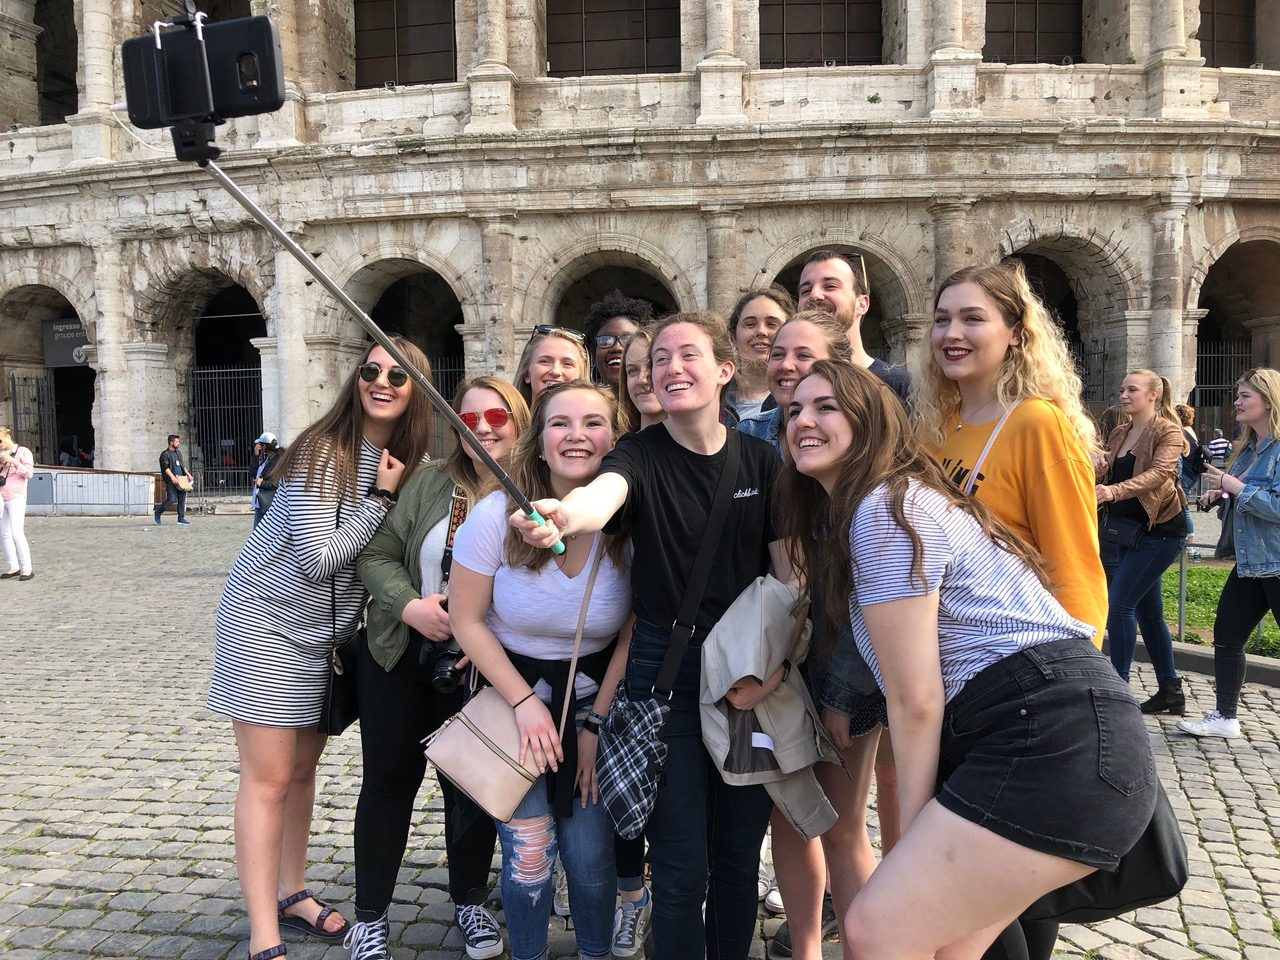 The group takes a selfie in front of the Coliseum in Rome.